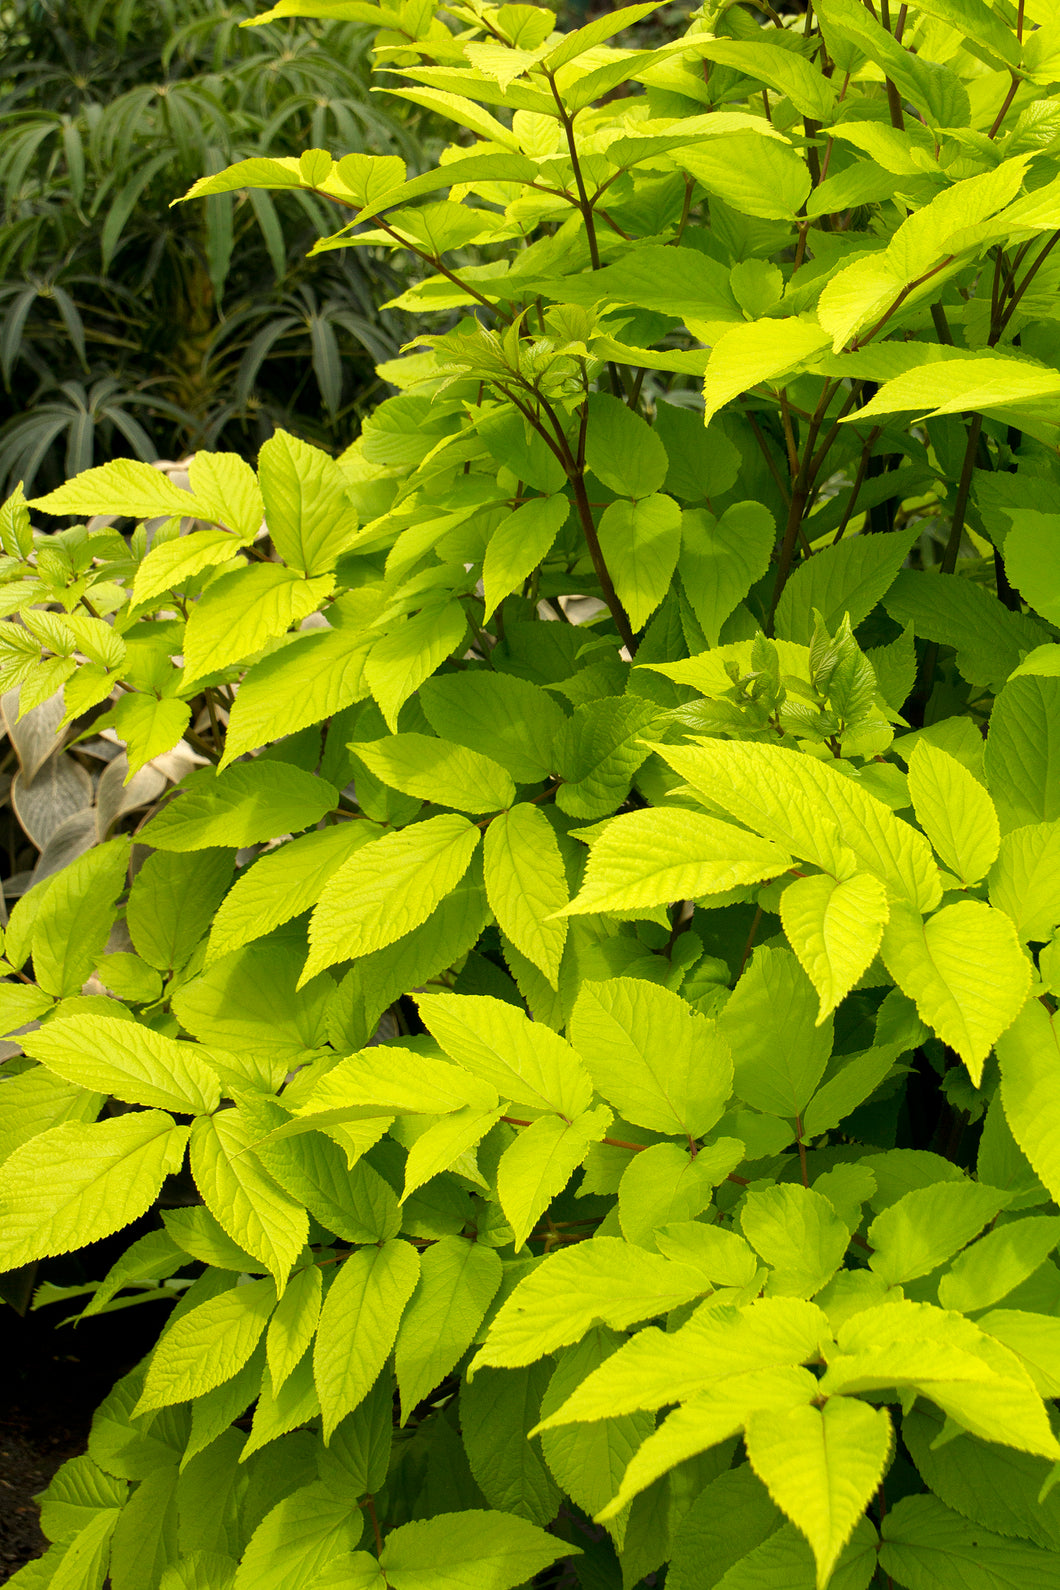 Aralia cordata 'Sun King' (Spikenard) 2.5 gallon